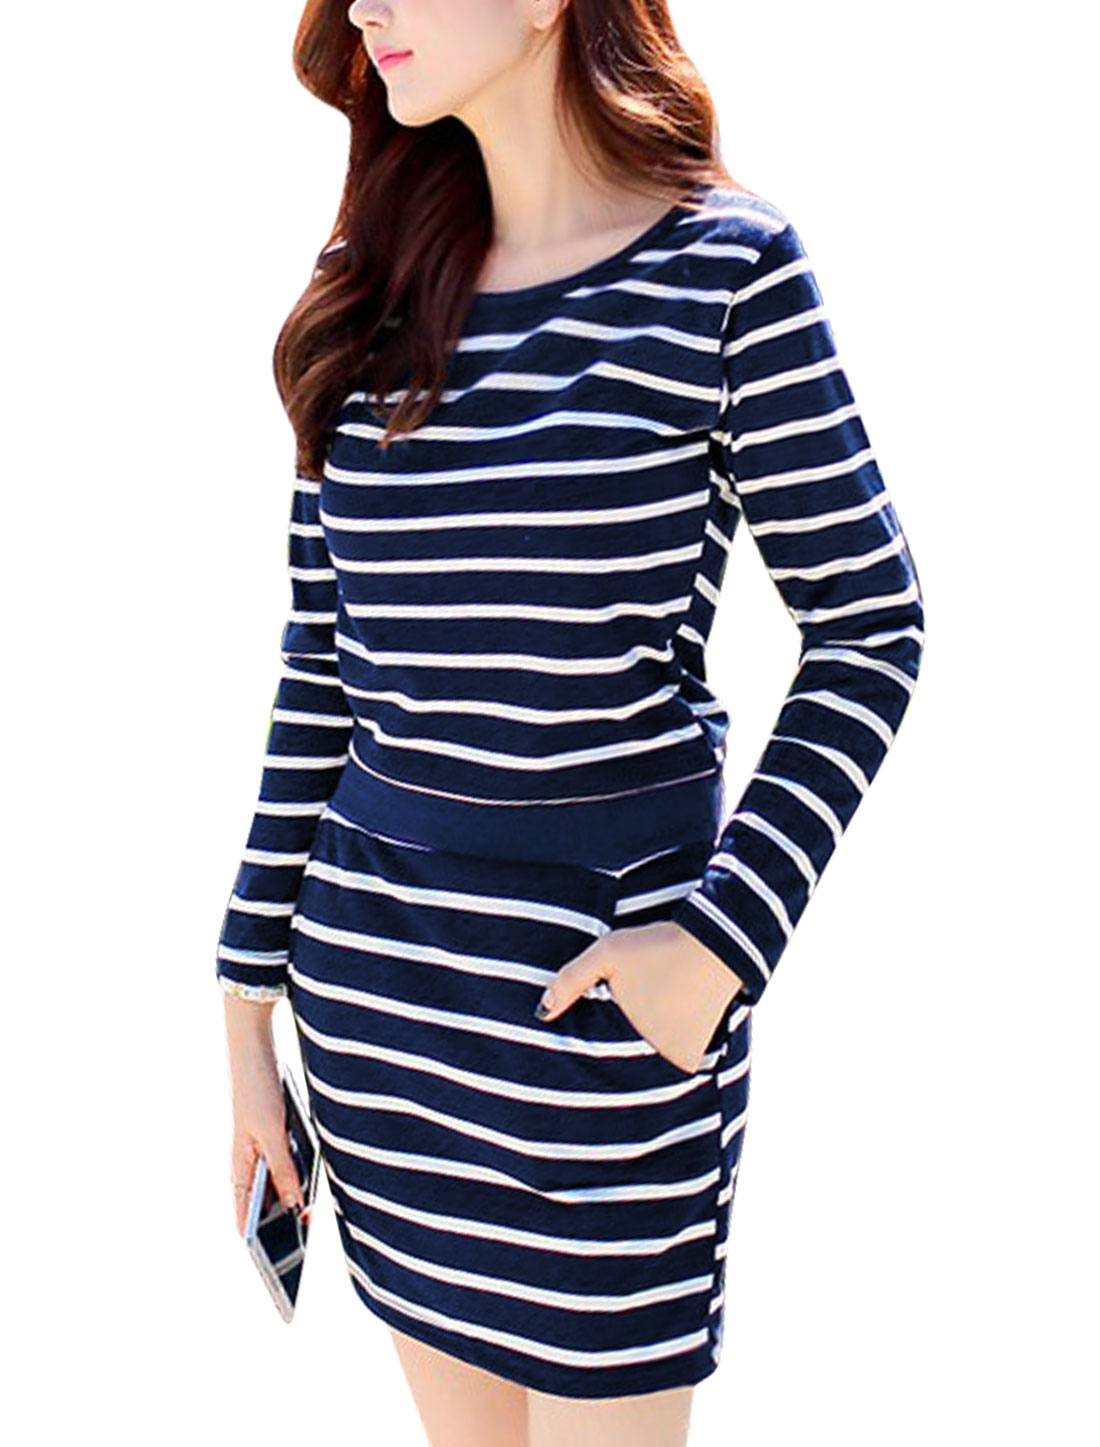 Women Round Neck Horizontal Stripes Long Sleeves Casual Tunic Dress Navy Blue XS